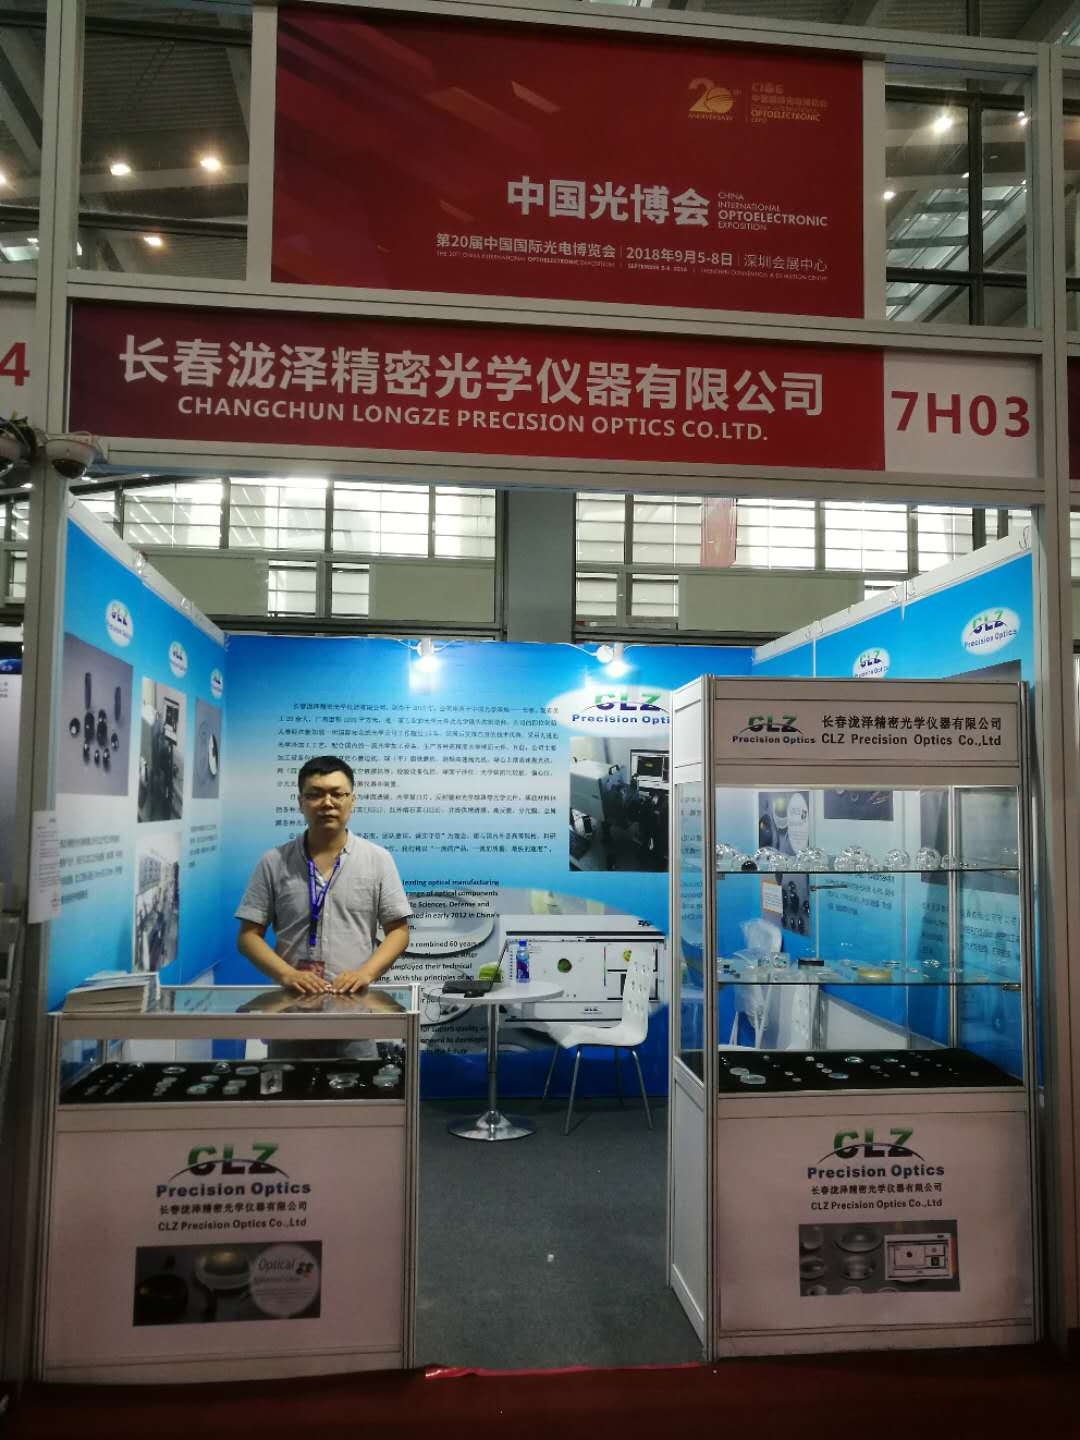 Welcome to our booth 7H03 at CIOE2018 to discuss what you need optical lens